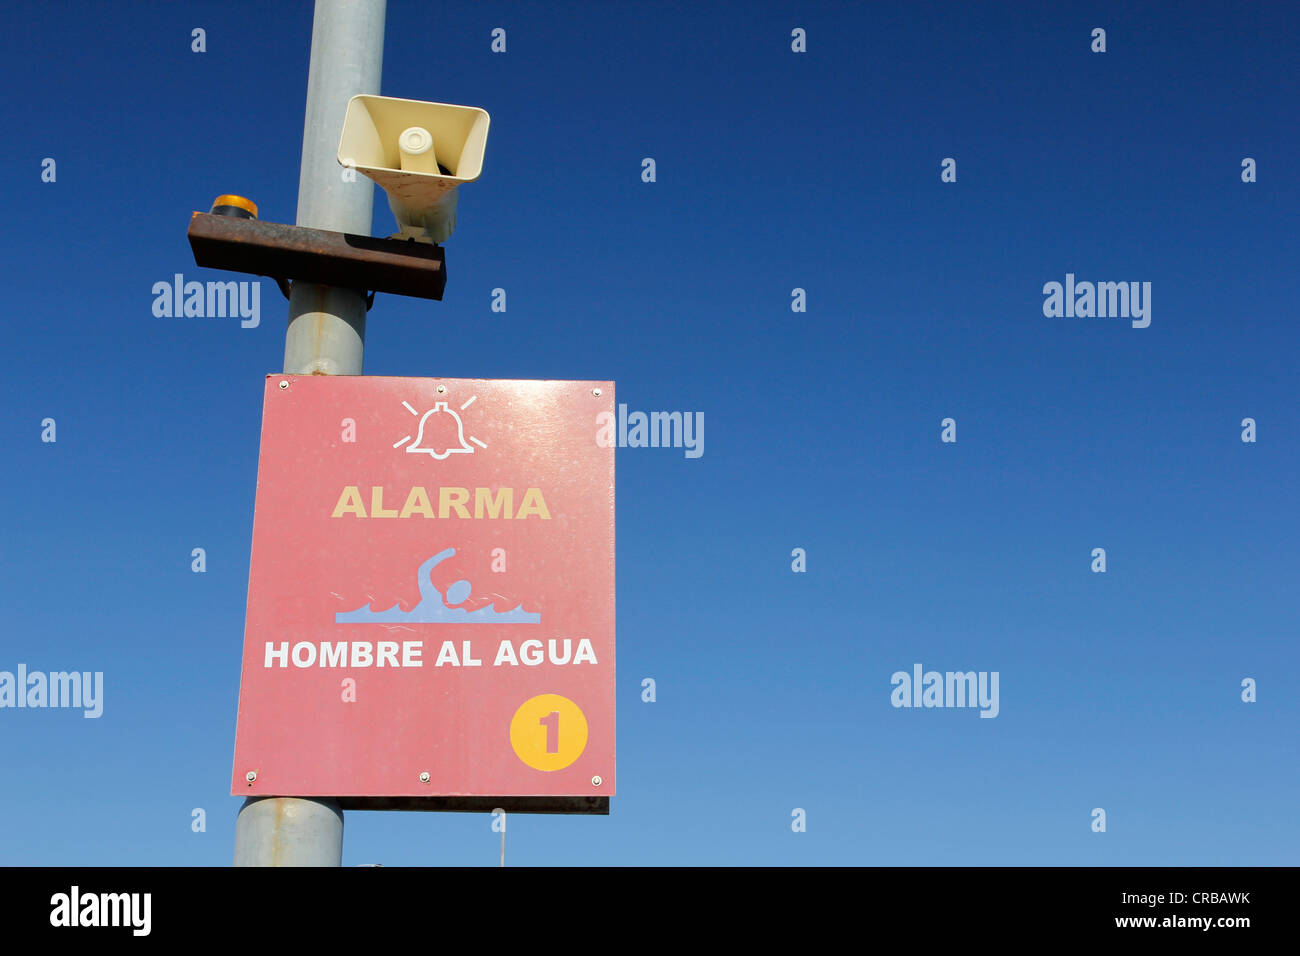 Alarm for a person in the sea, auxiliary station, Puerto Madryn Pier, Chubut Province, Argentina, South America - Stock Image